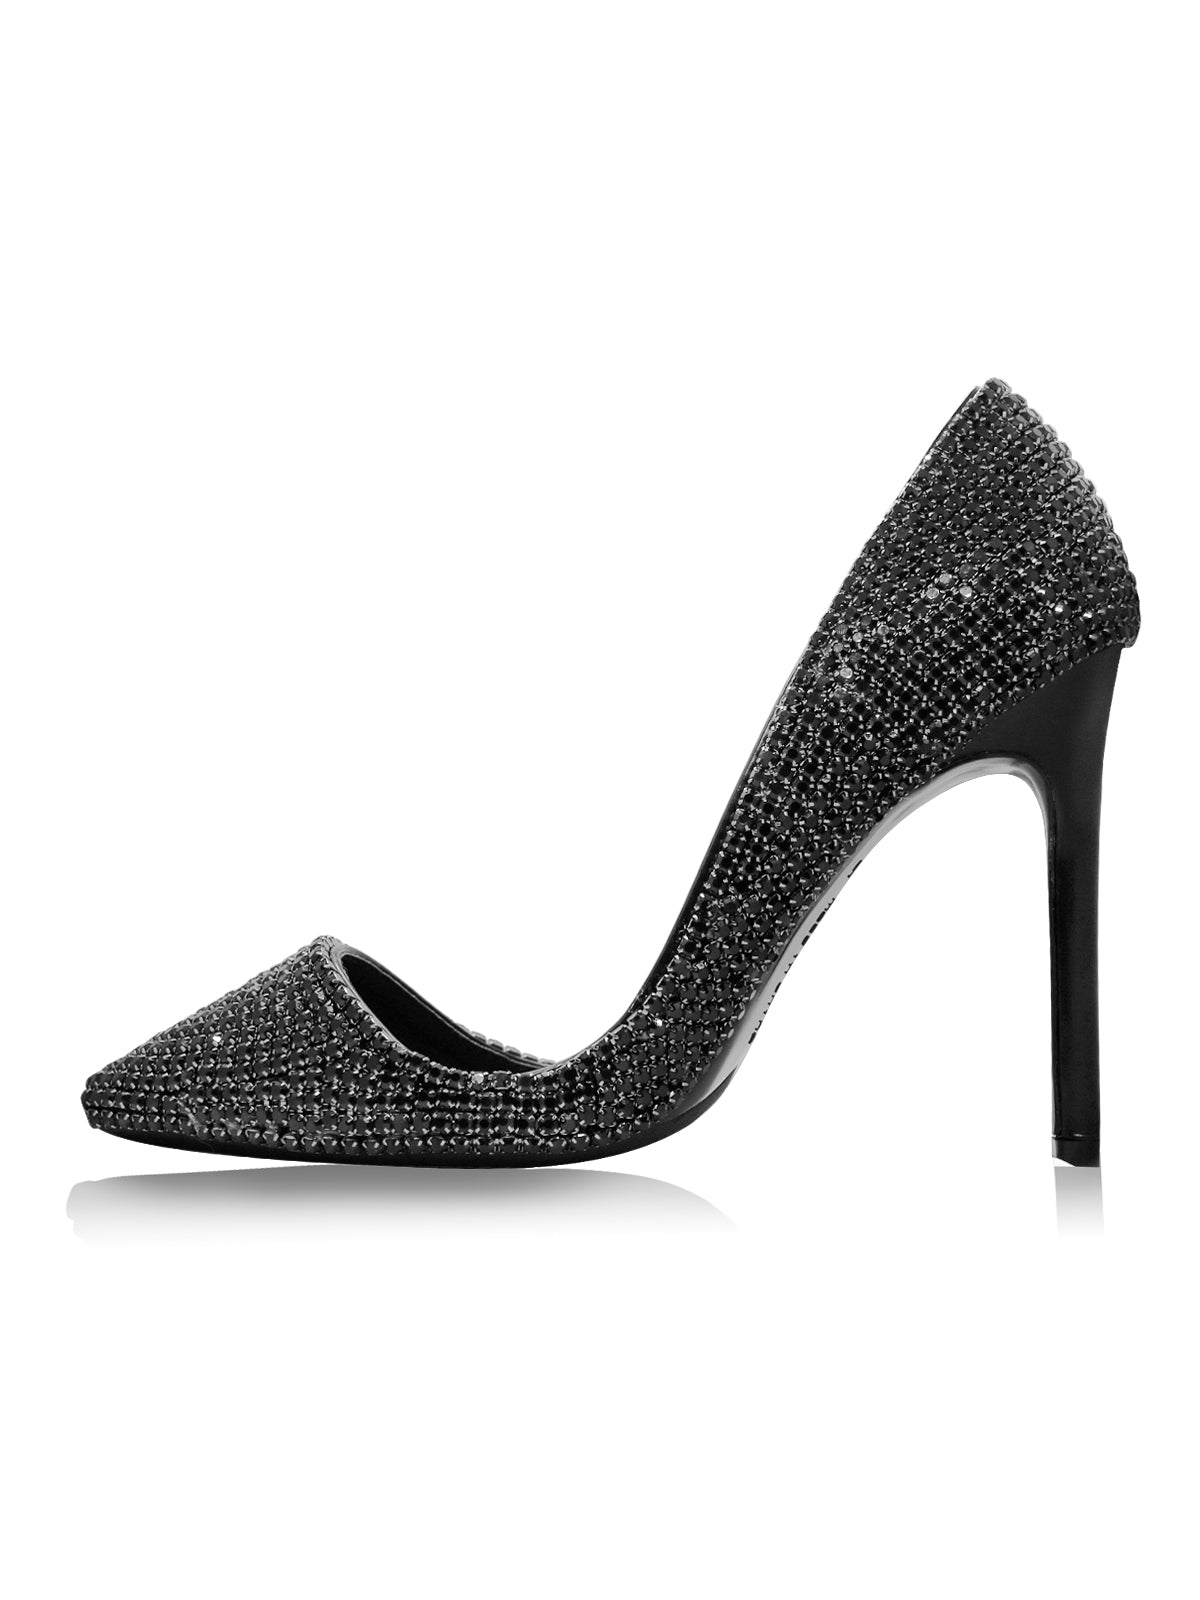 Black Diamond 4.3 inch Stilettos (109mm)